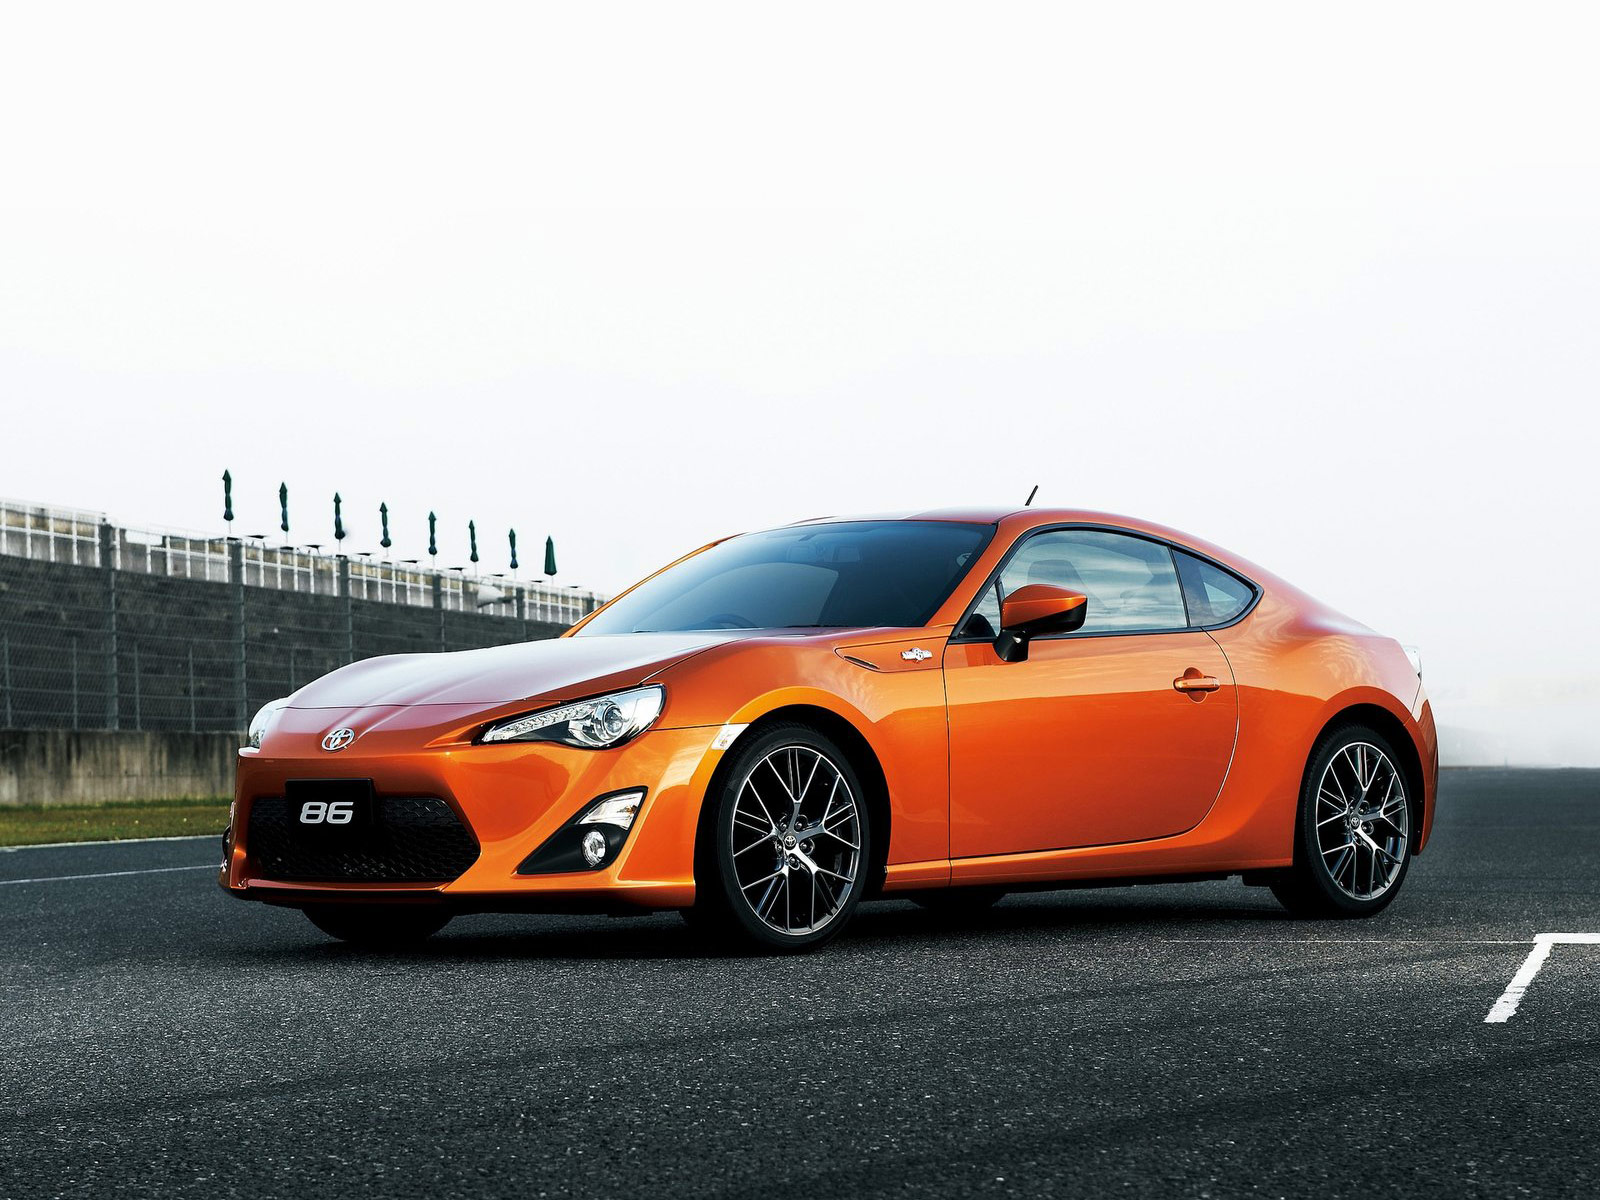 2013 TOYOTA GT86 Auto Insurance Information